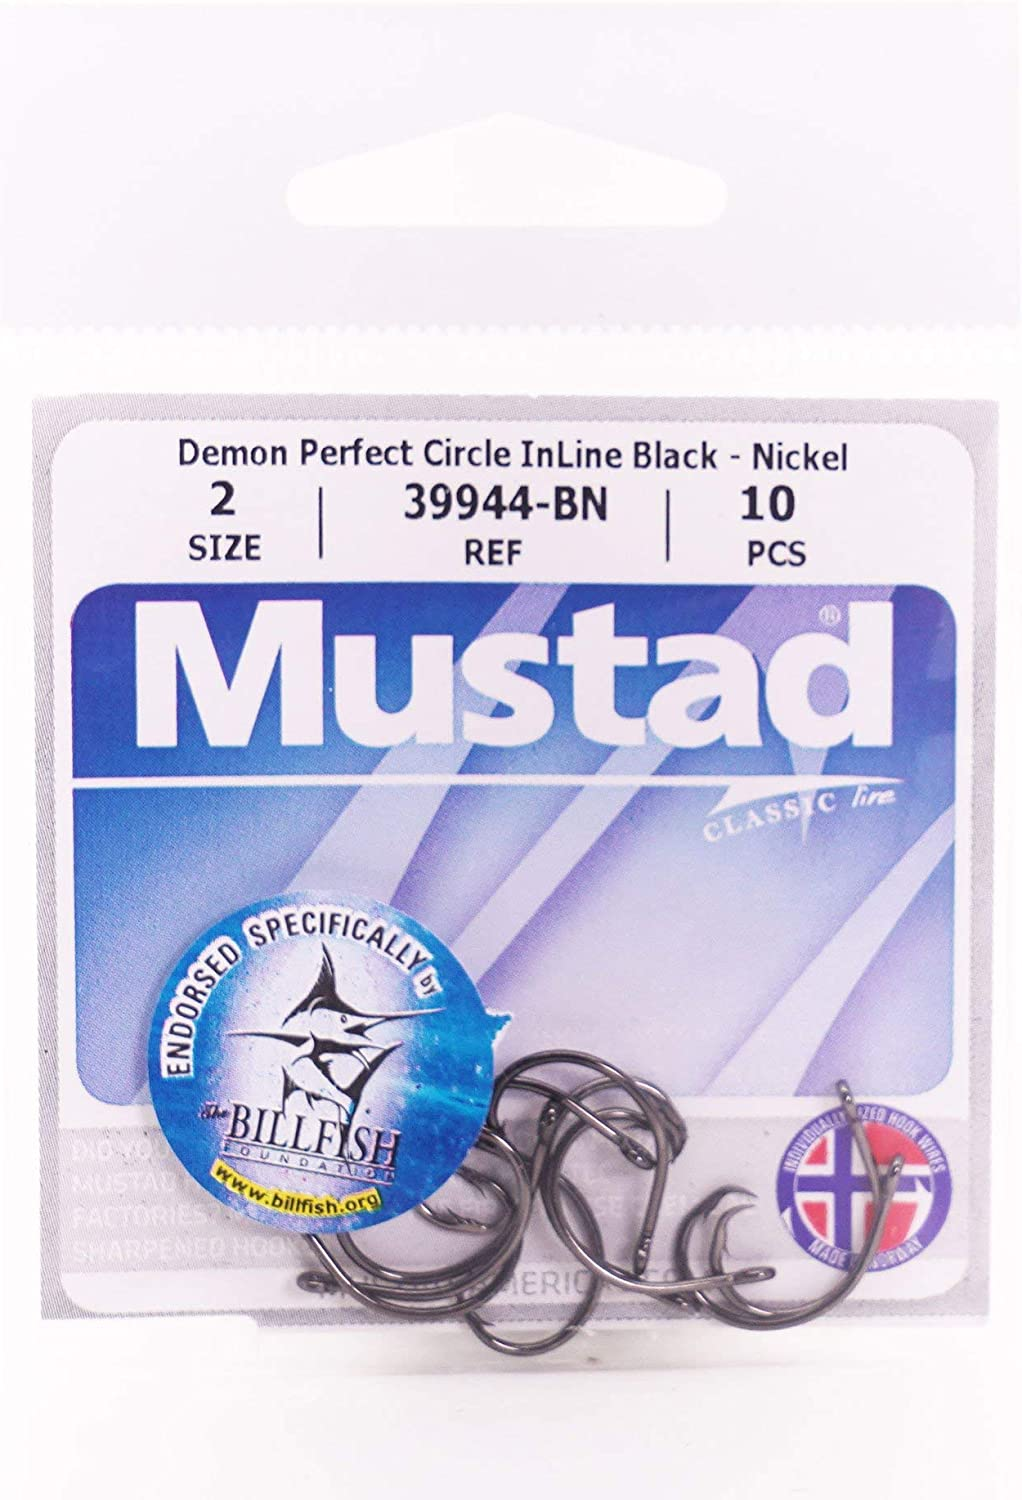 Mustad Classic 39944 Standard Wire Demon Perfect in Line Wide Gap Circle Hook Catfish Saltwater Freshwater Hooks for Tuna Bass and More